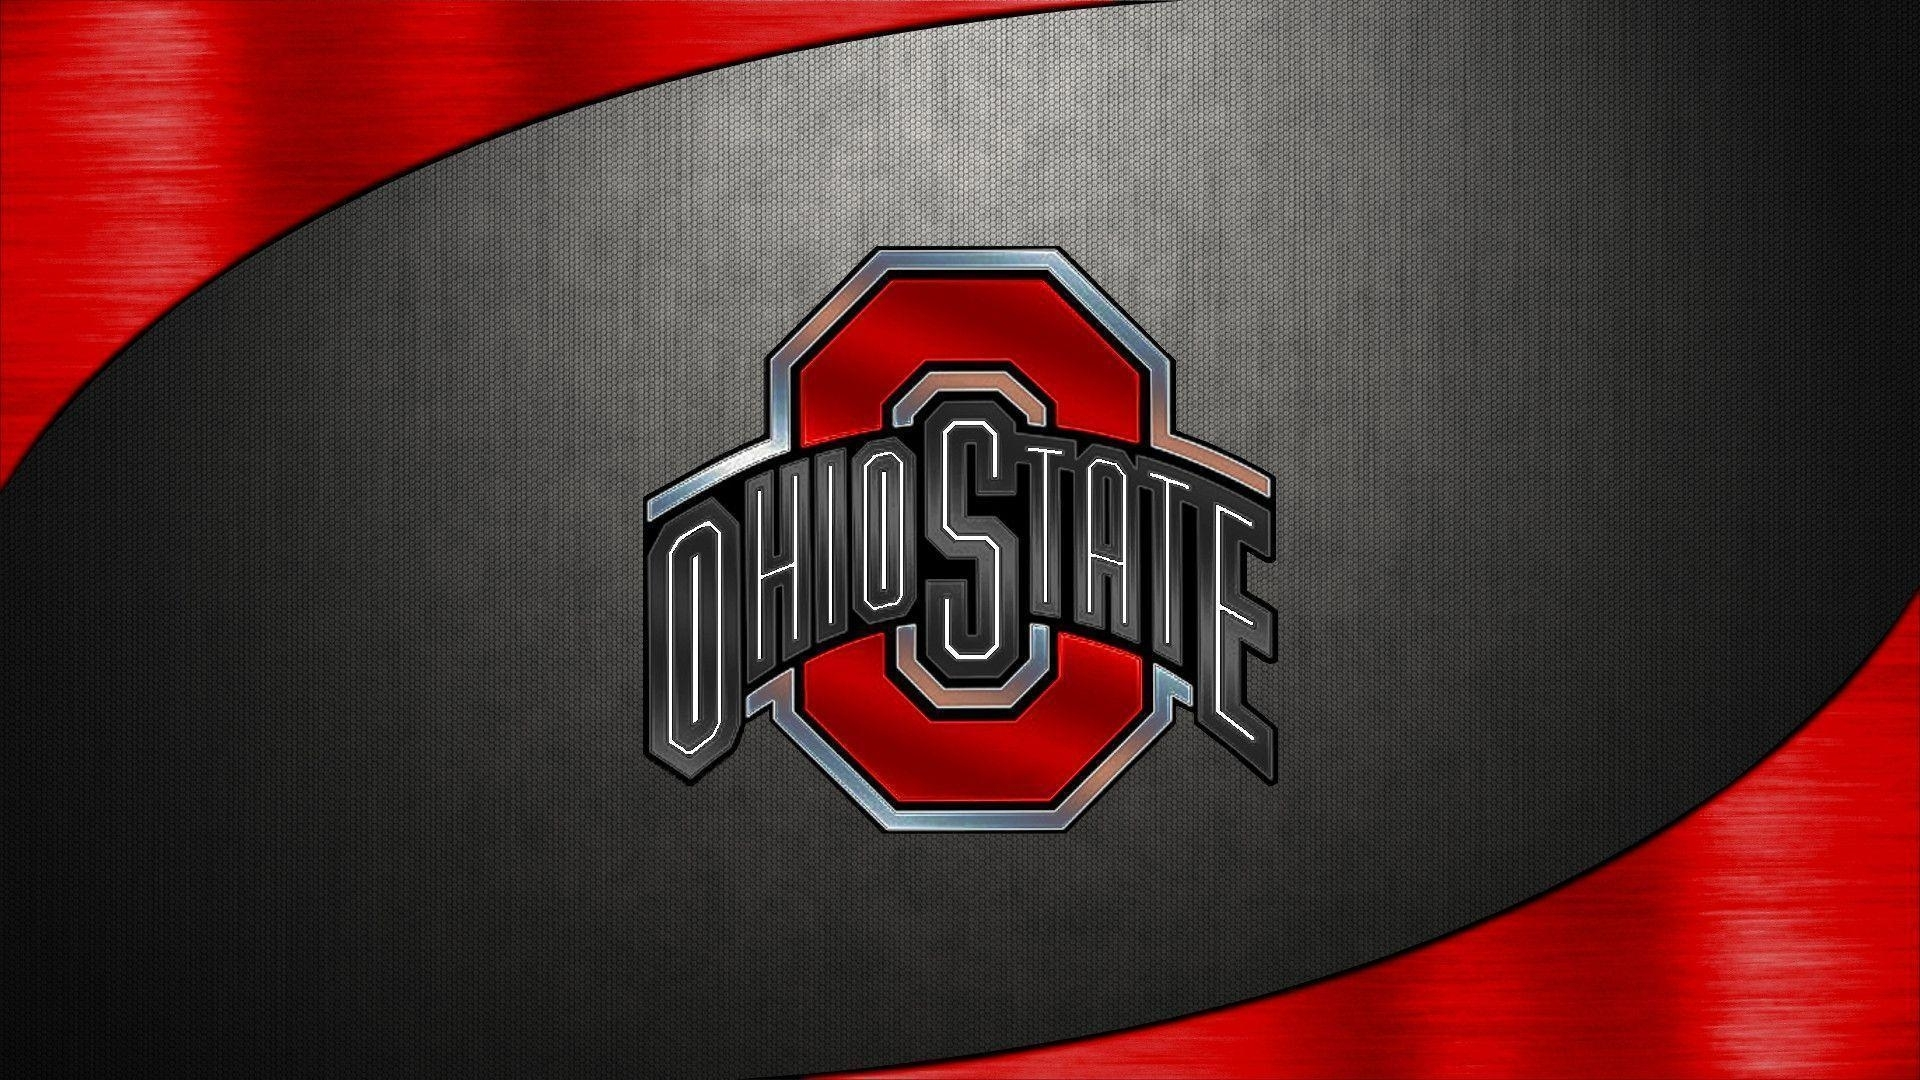 ohio state buckeyes football wallpapers - wallpaper cave